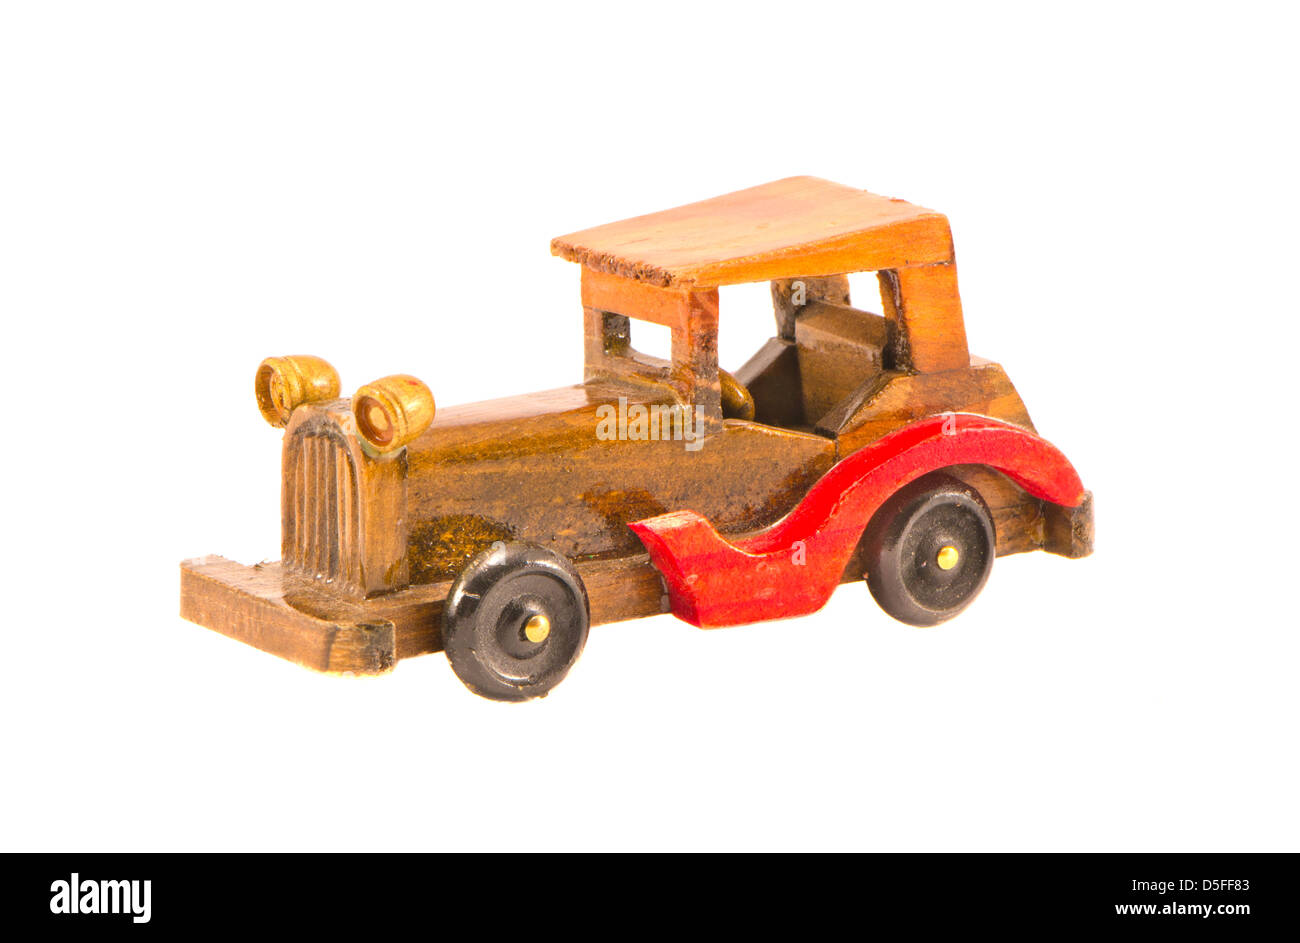 wooden old car model isolated on white - Stock Image